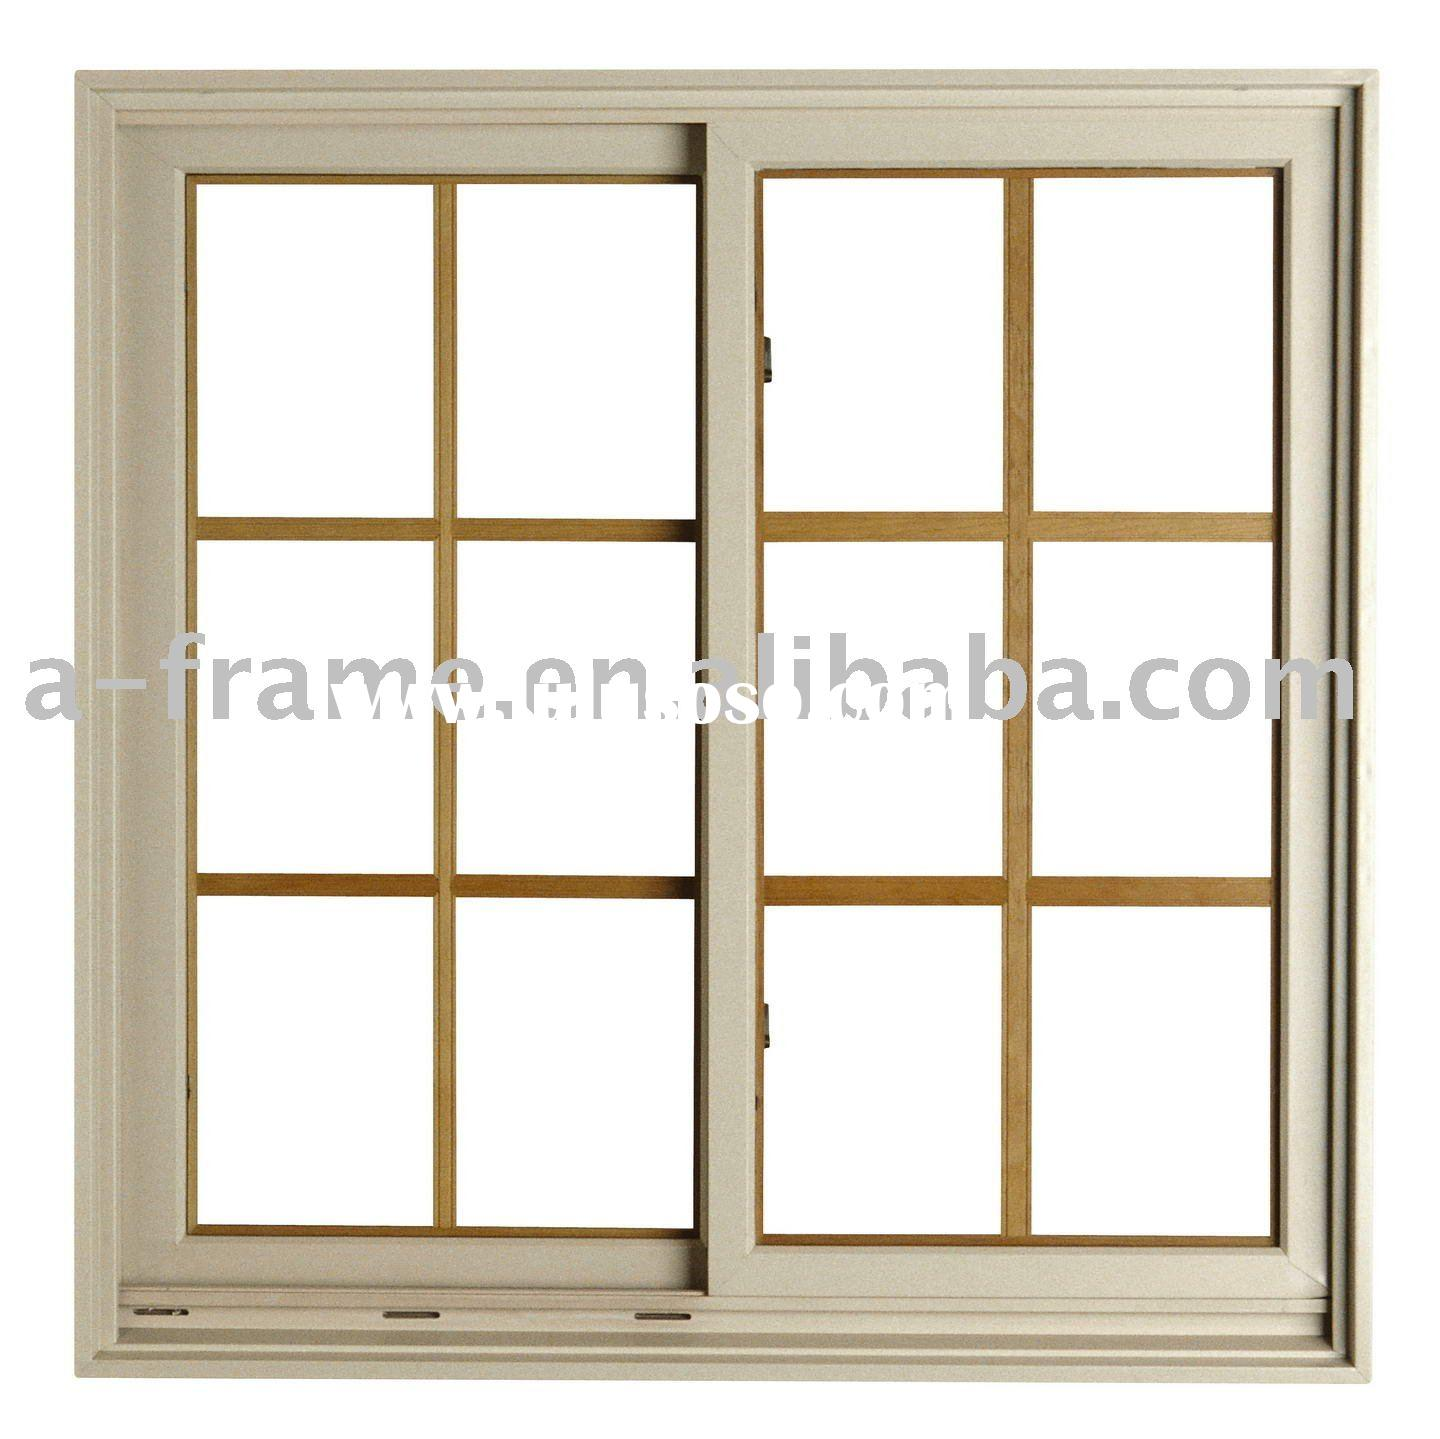 Sample aluminium doors and window manufacturer company p for Window and door company